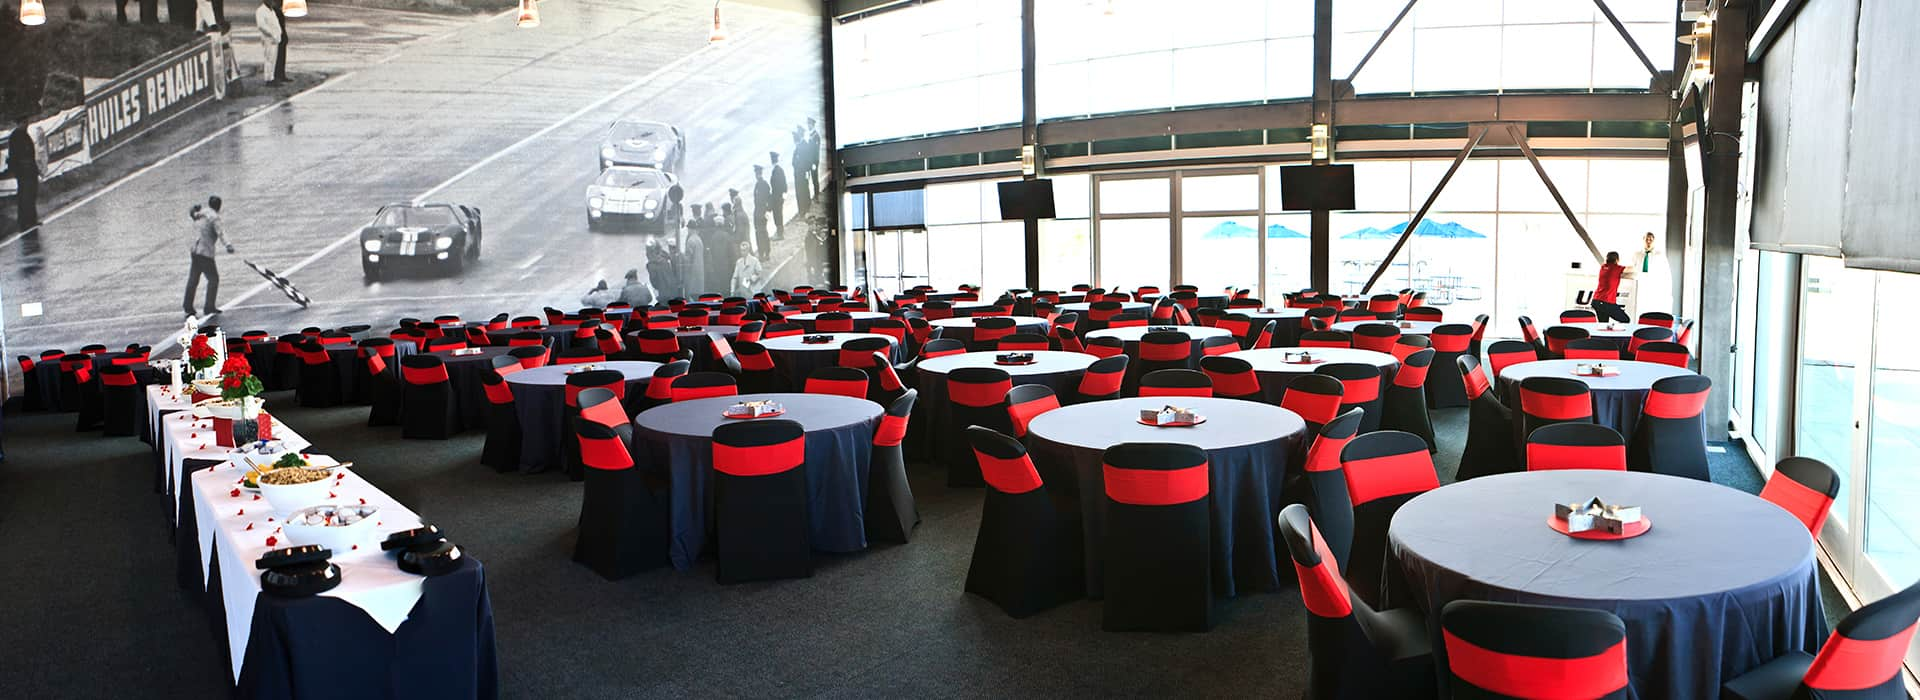 Utah Corporate Events Facility, Indoor Event Center